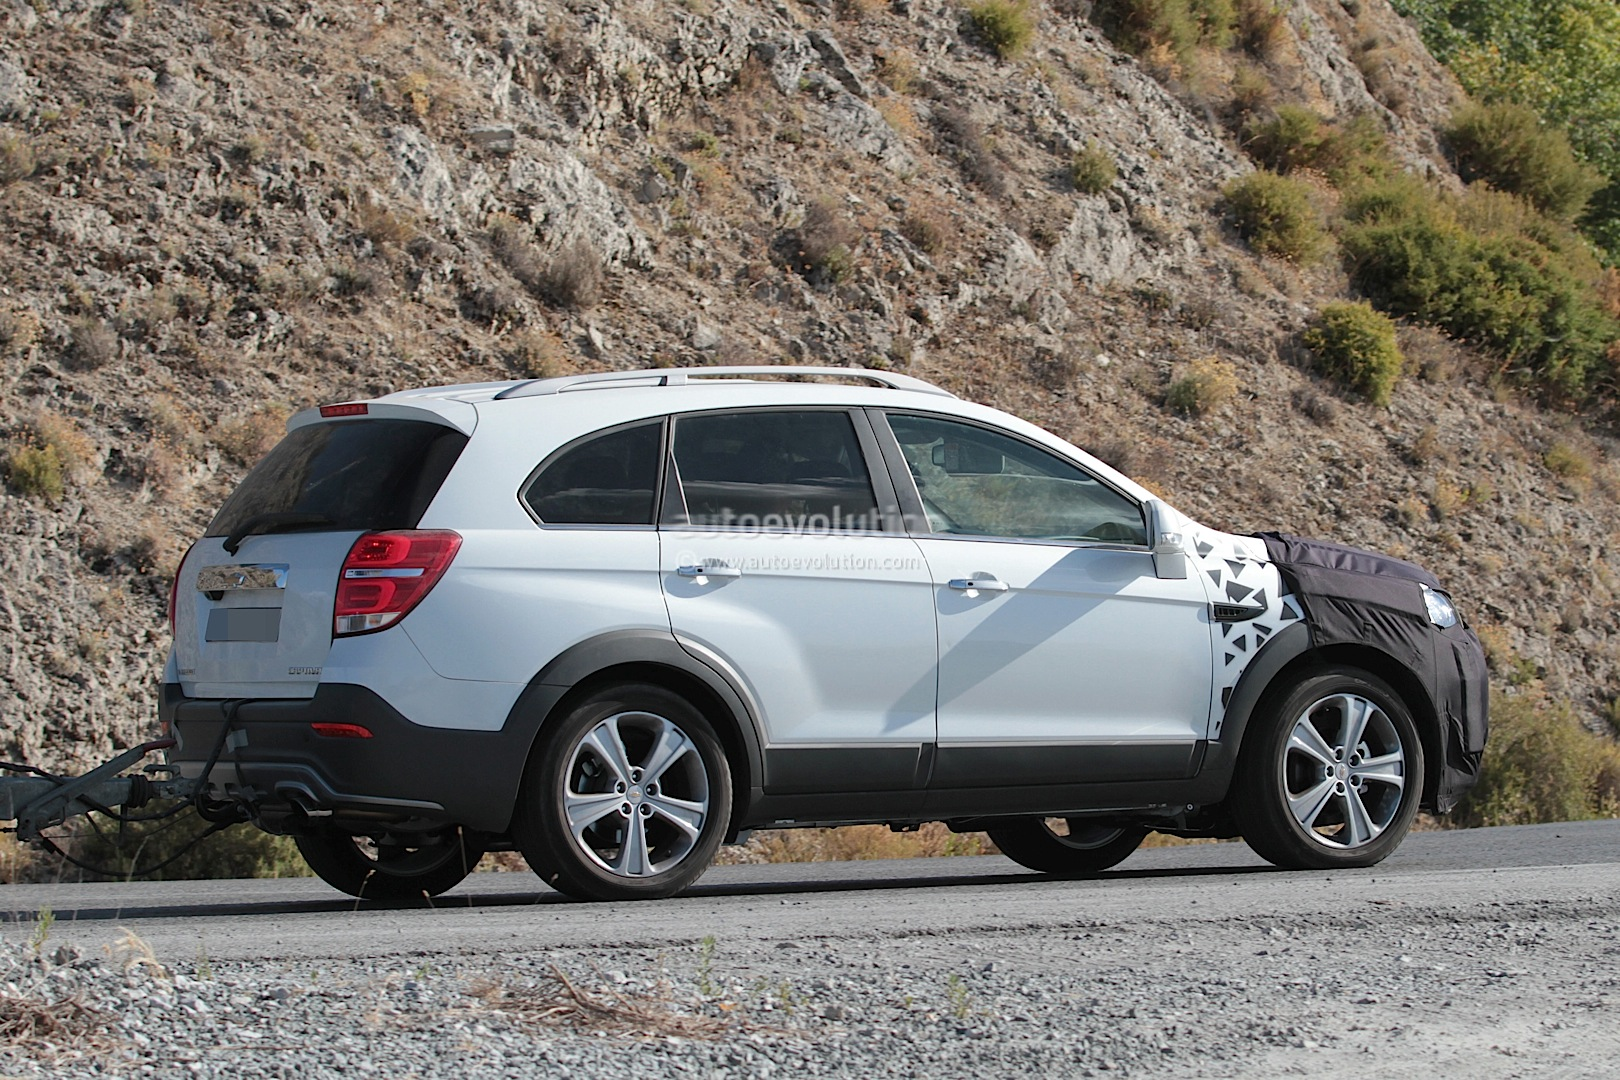 Chevy Suv Models >> 2015 Chevrolet Captiva / Opel Antara Facelift Spied ...